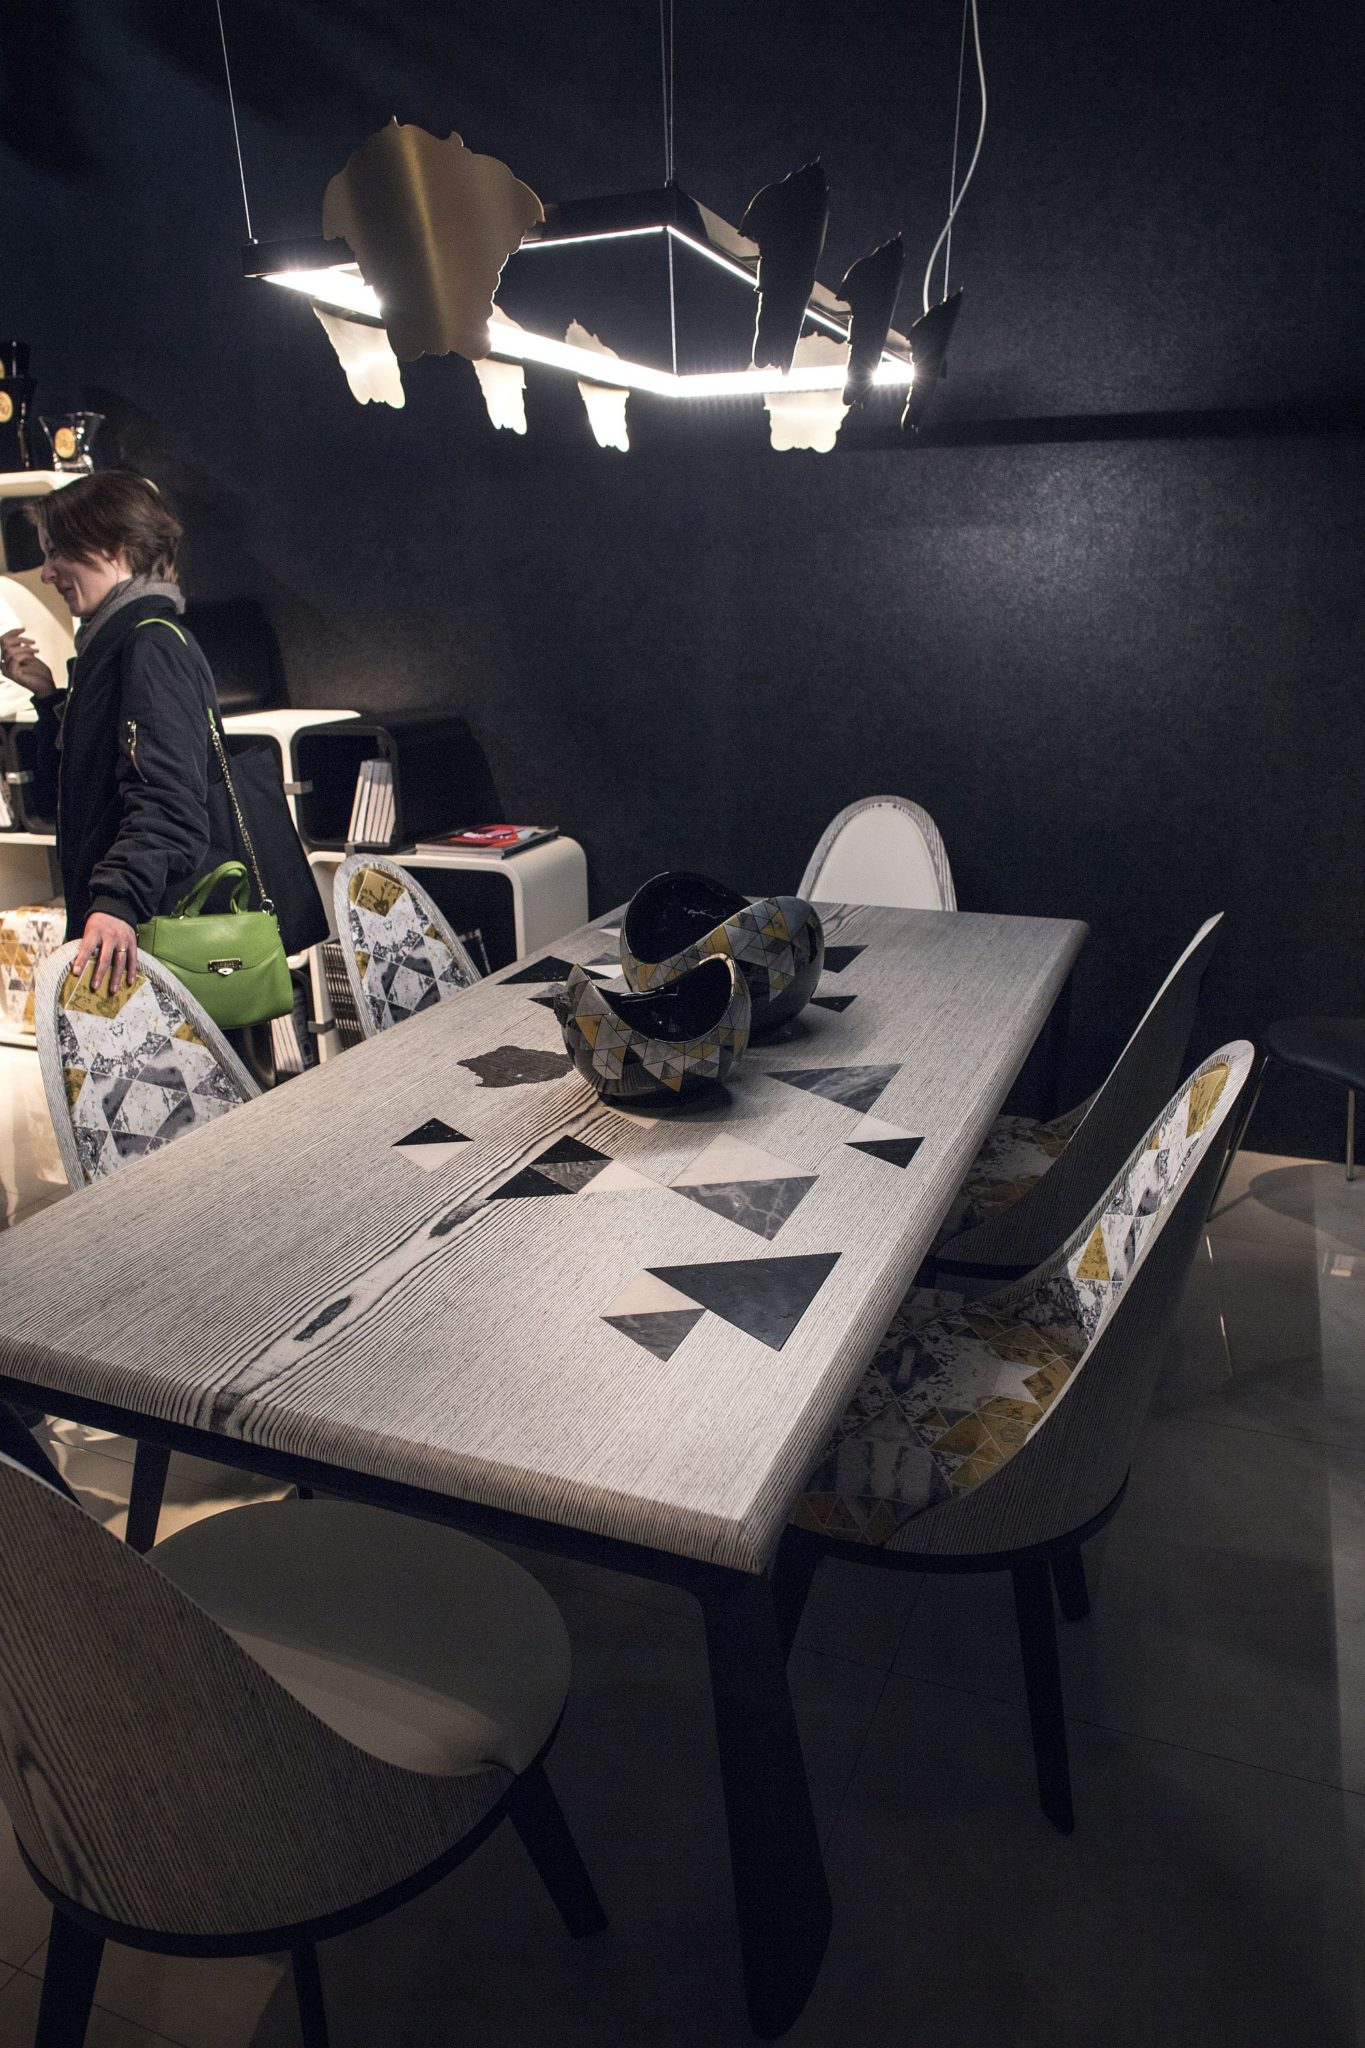 Dining-table-with-triangle-motif-on-top-stands-out-from-the-crowd